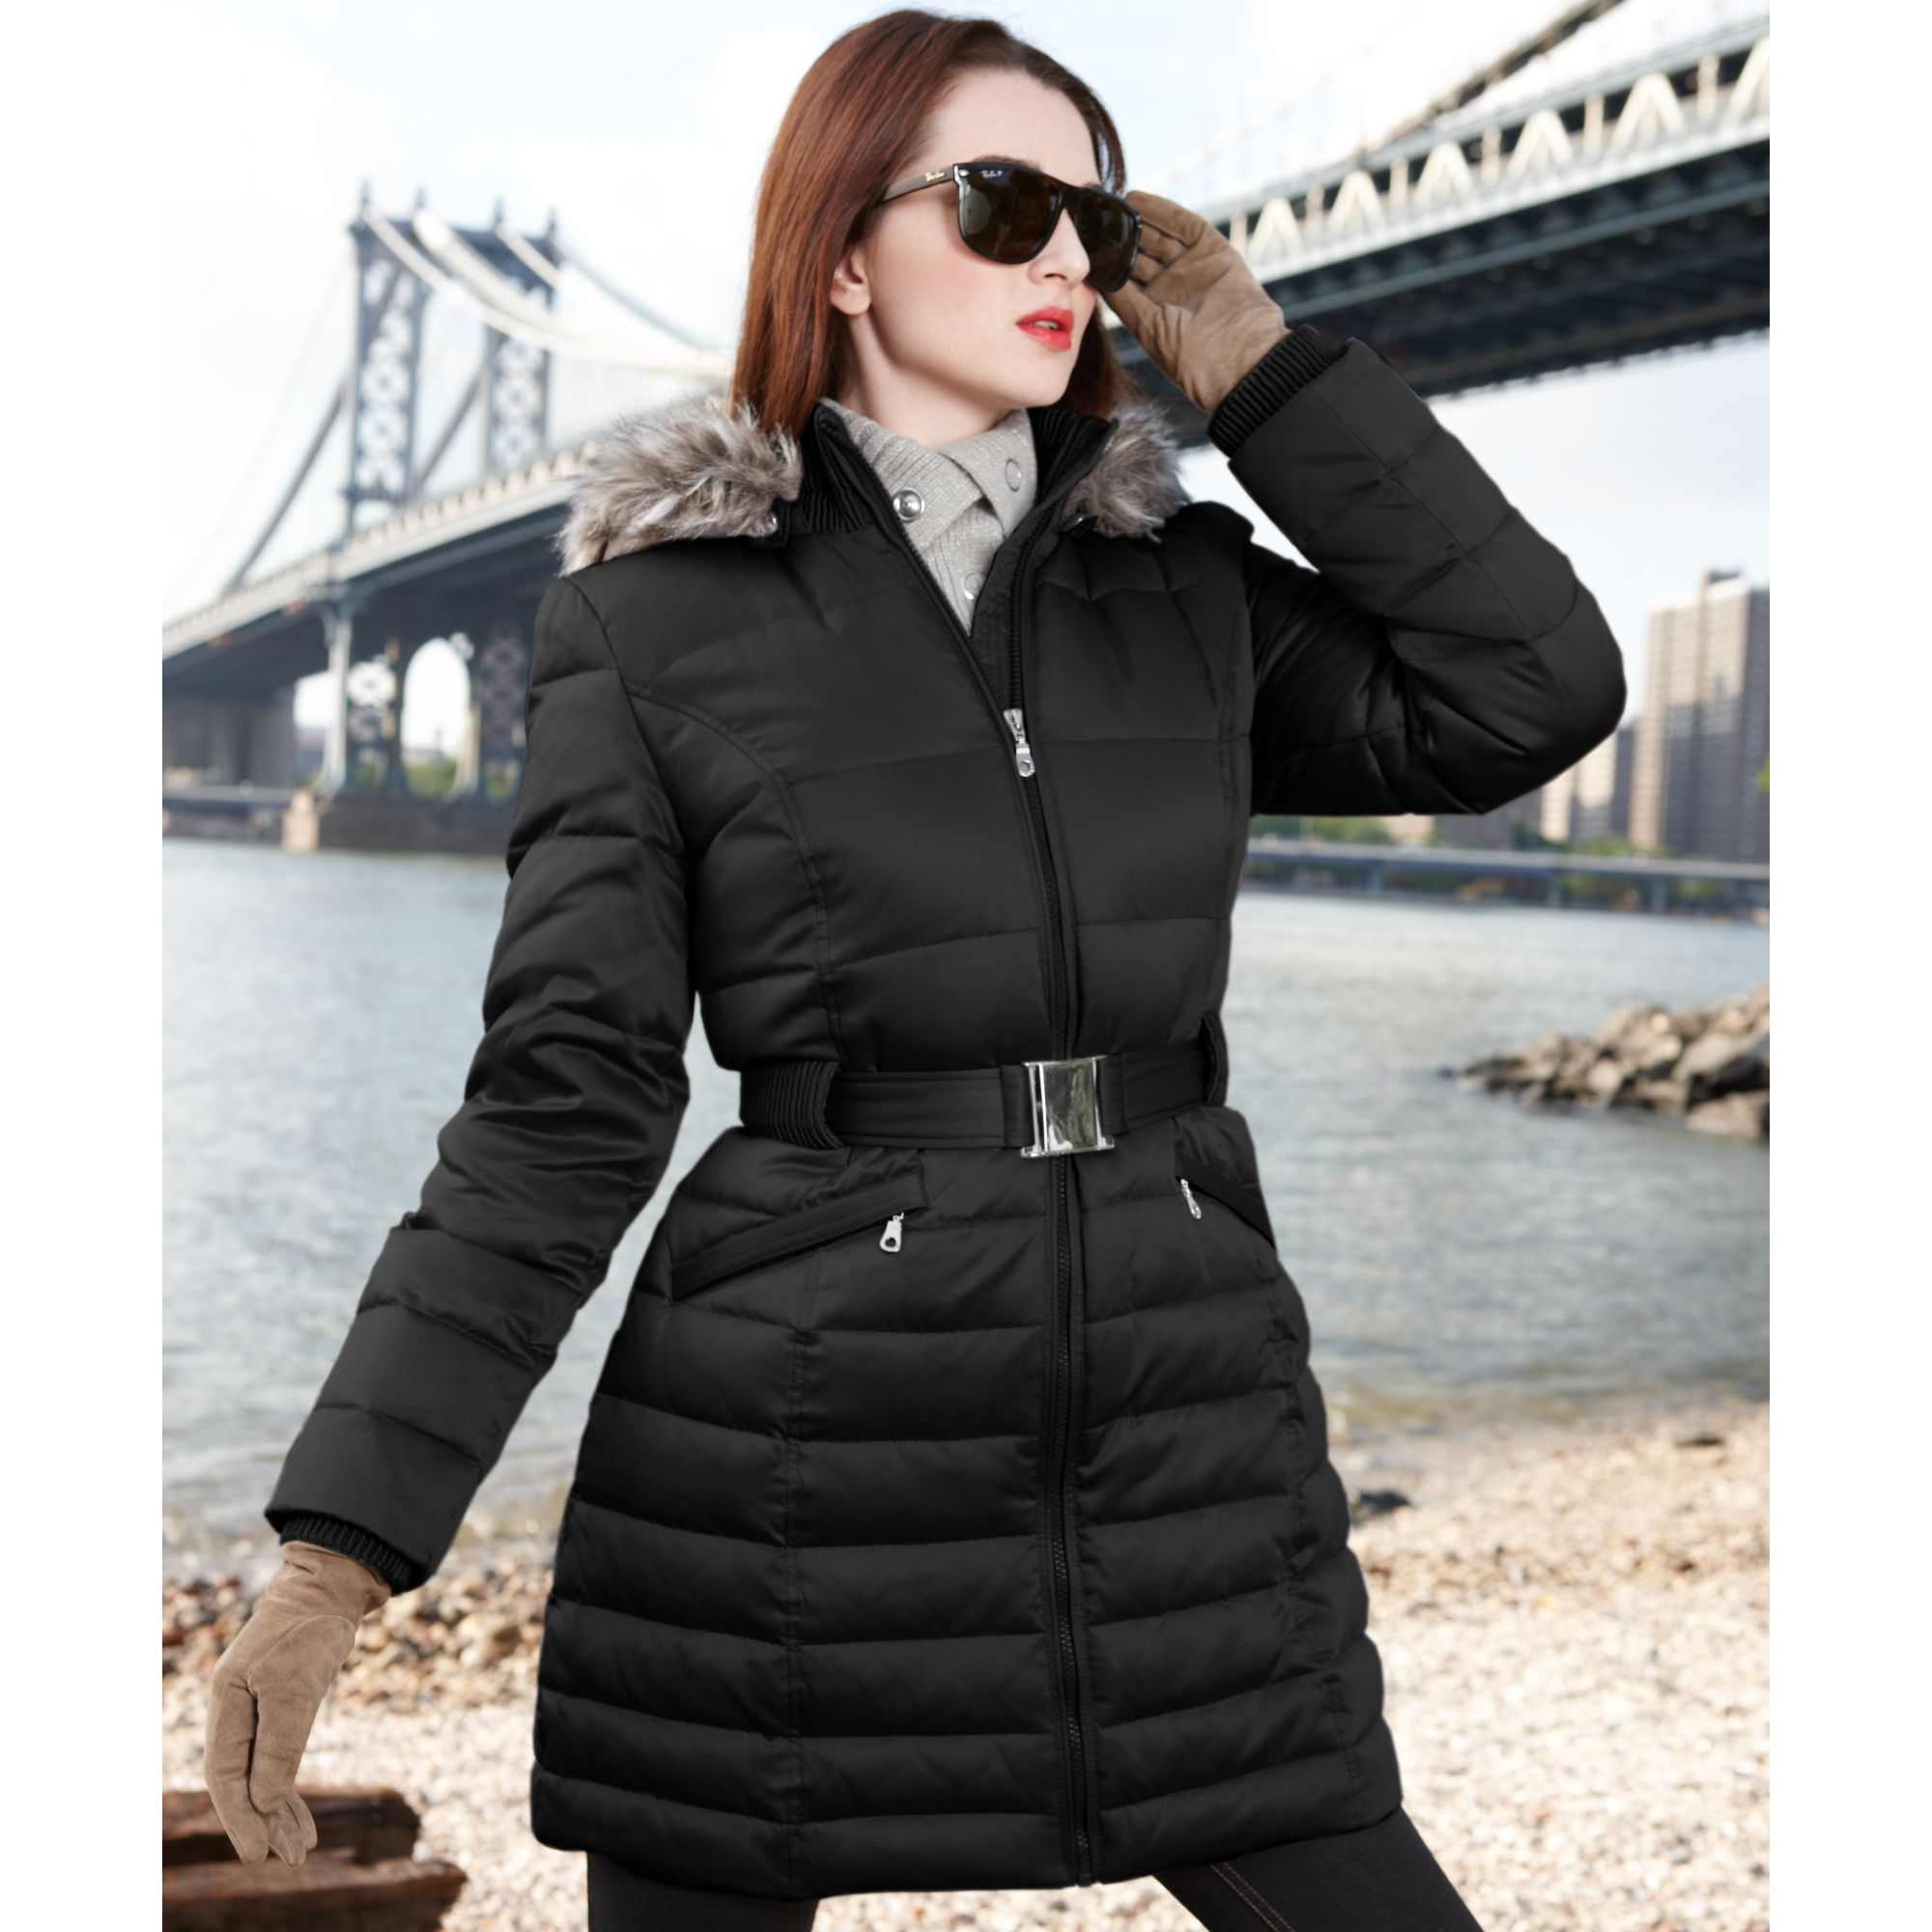 Dkny Faux Fur Trim Hooded Belted Puffer in Black | Lyst